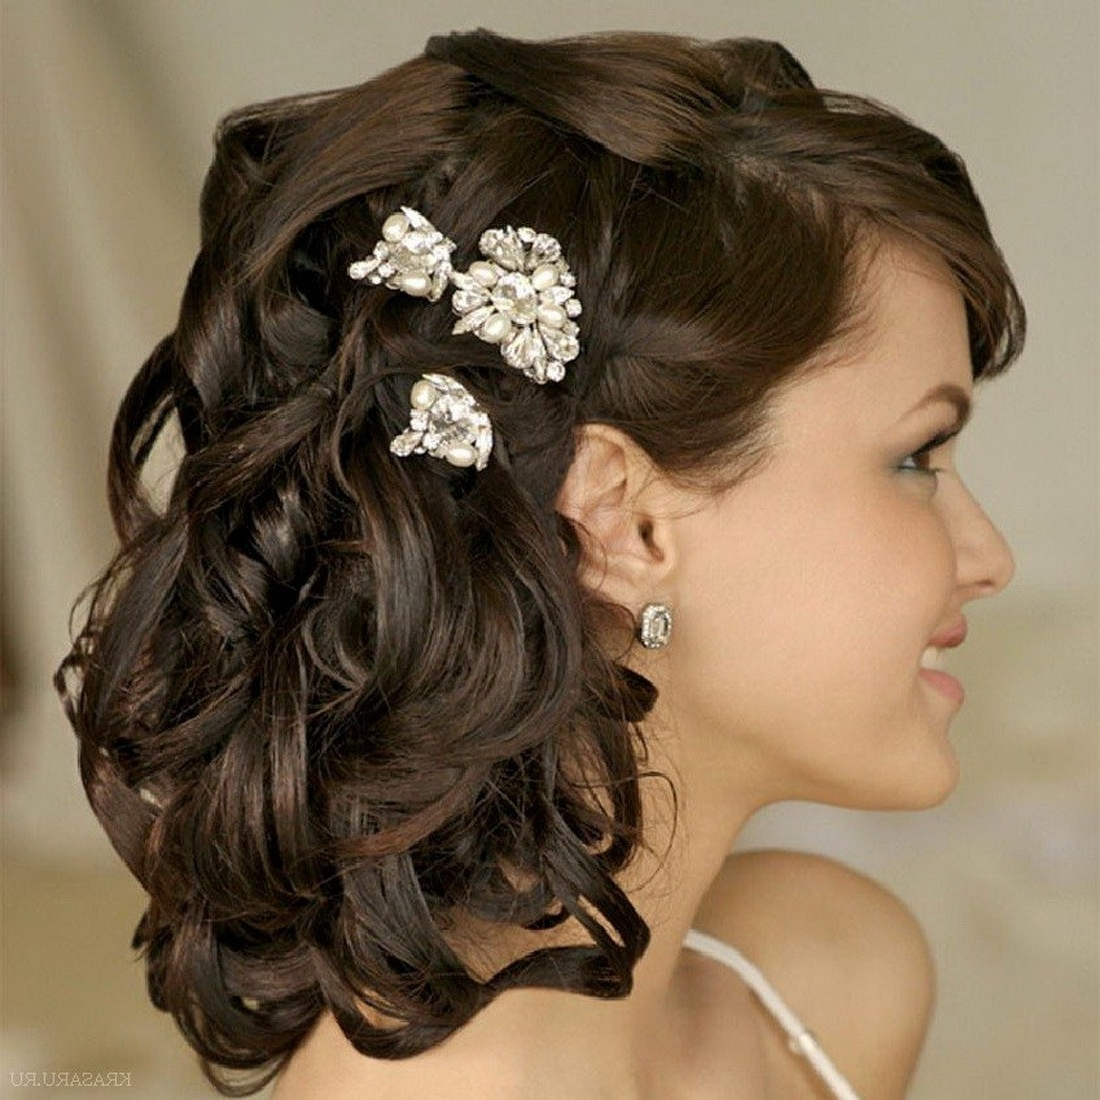 Fashionable Short Wedding Hairstyles Throughout Short Wedding Hairstyle: Lovely Short Hairstyle On Your Special Day (View 7 of 15)